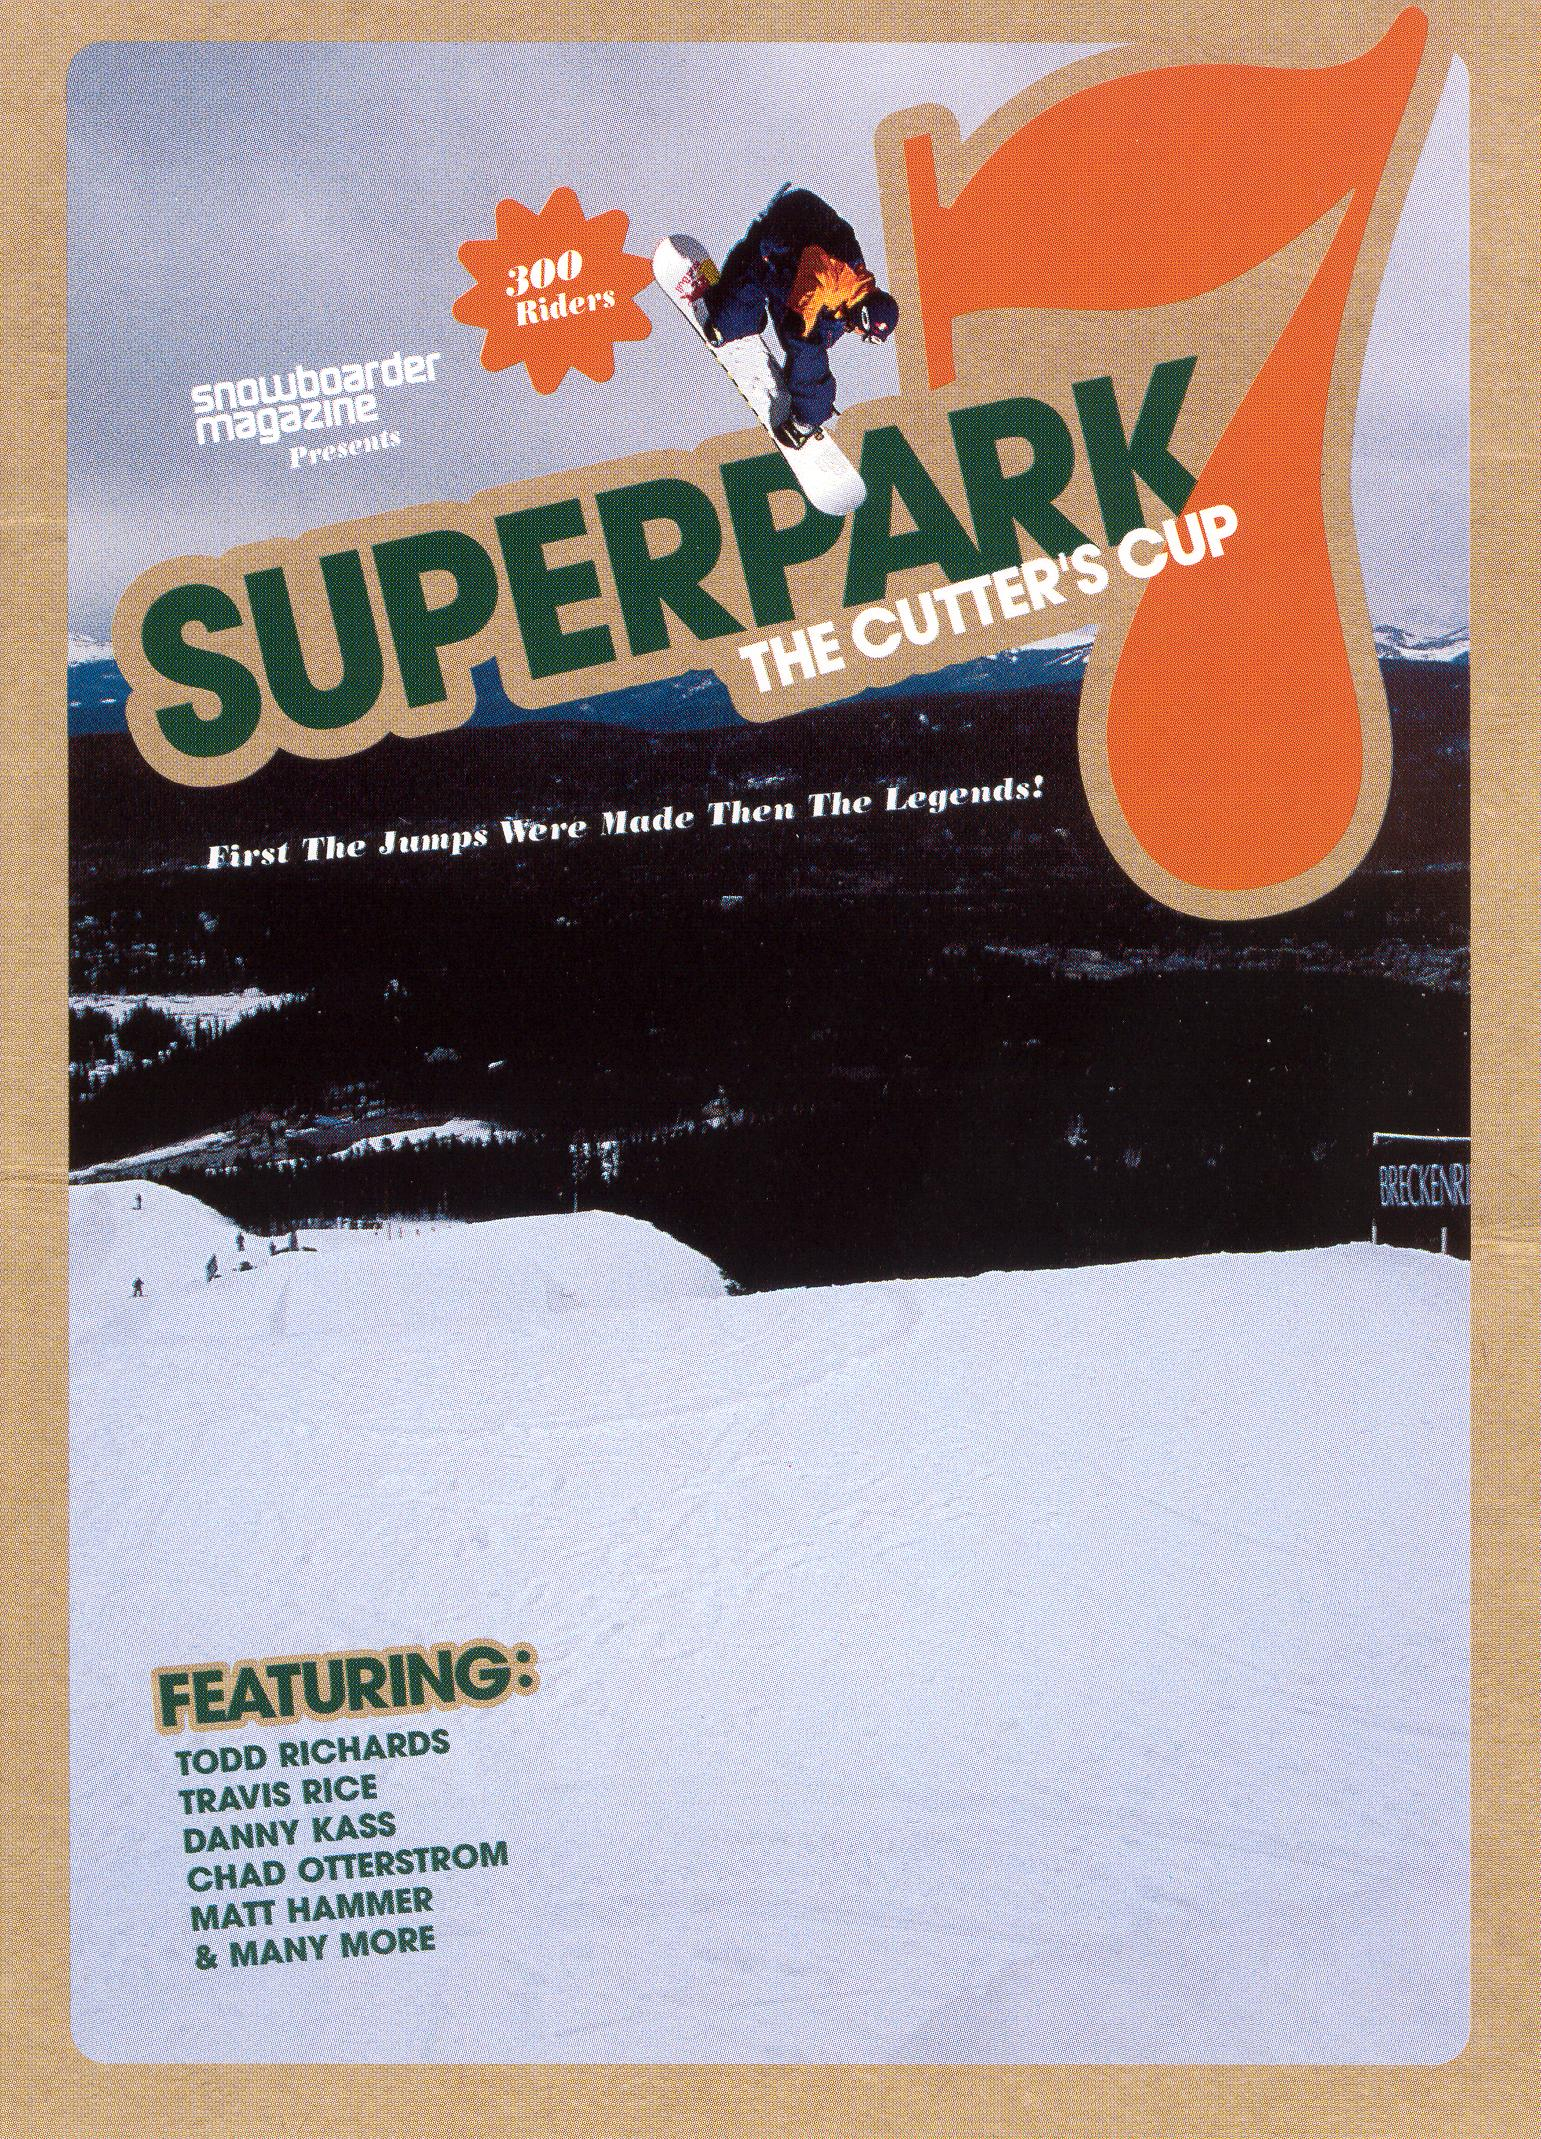 Superpark 7: The Cutter's Cup (2003)